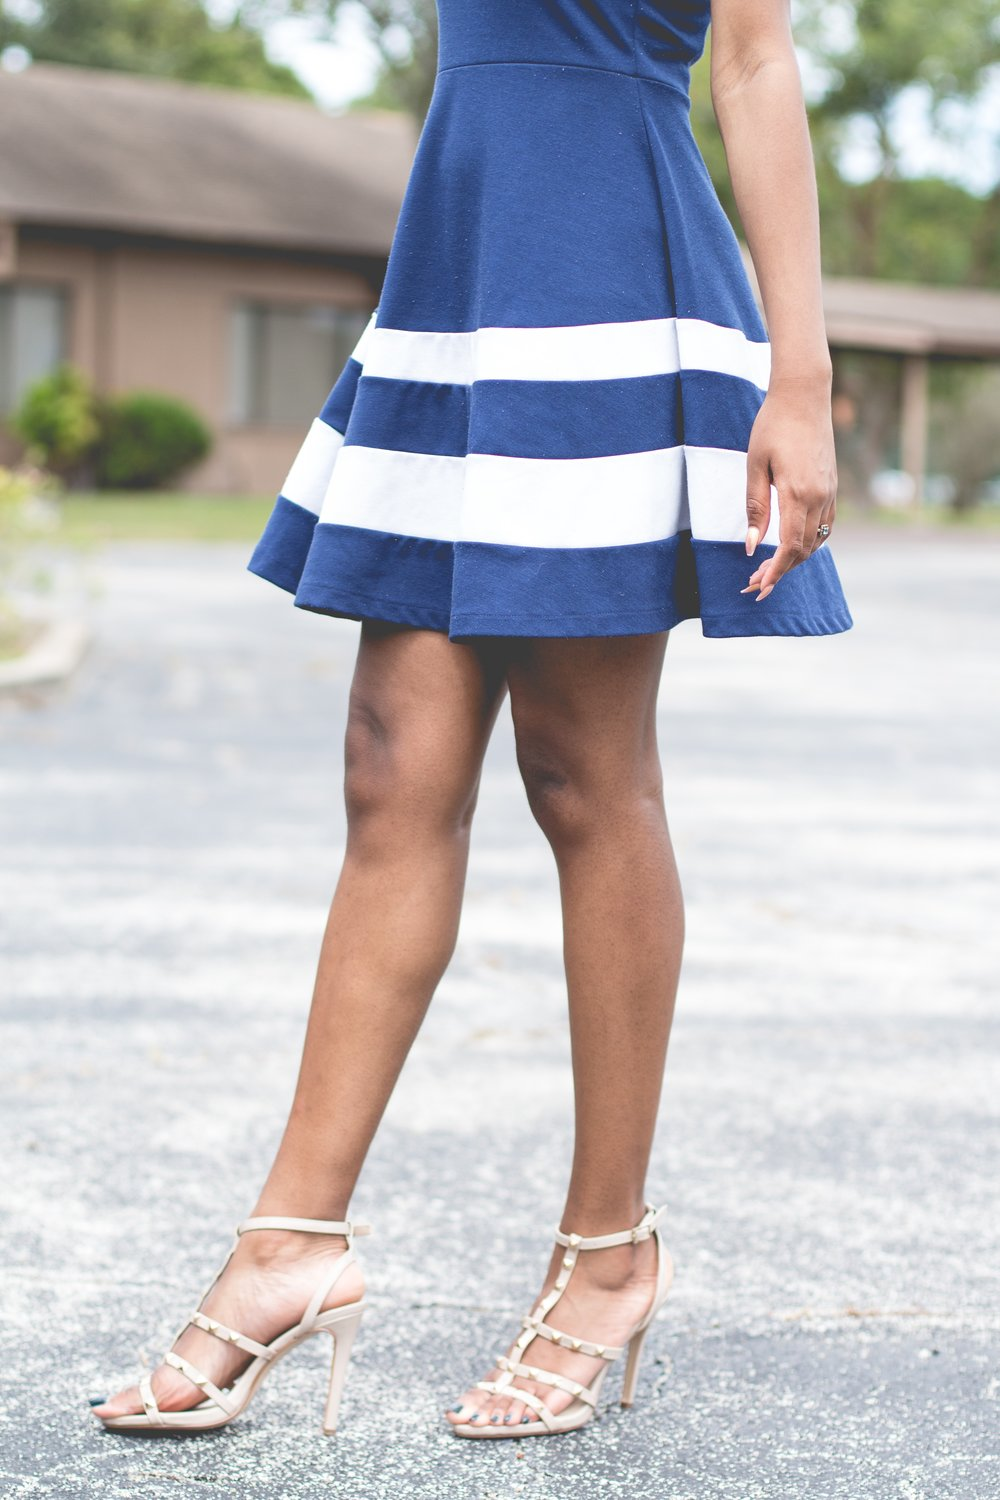 How many ways can you style your favorite skirt?